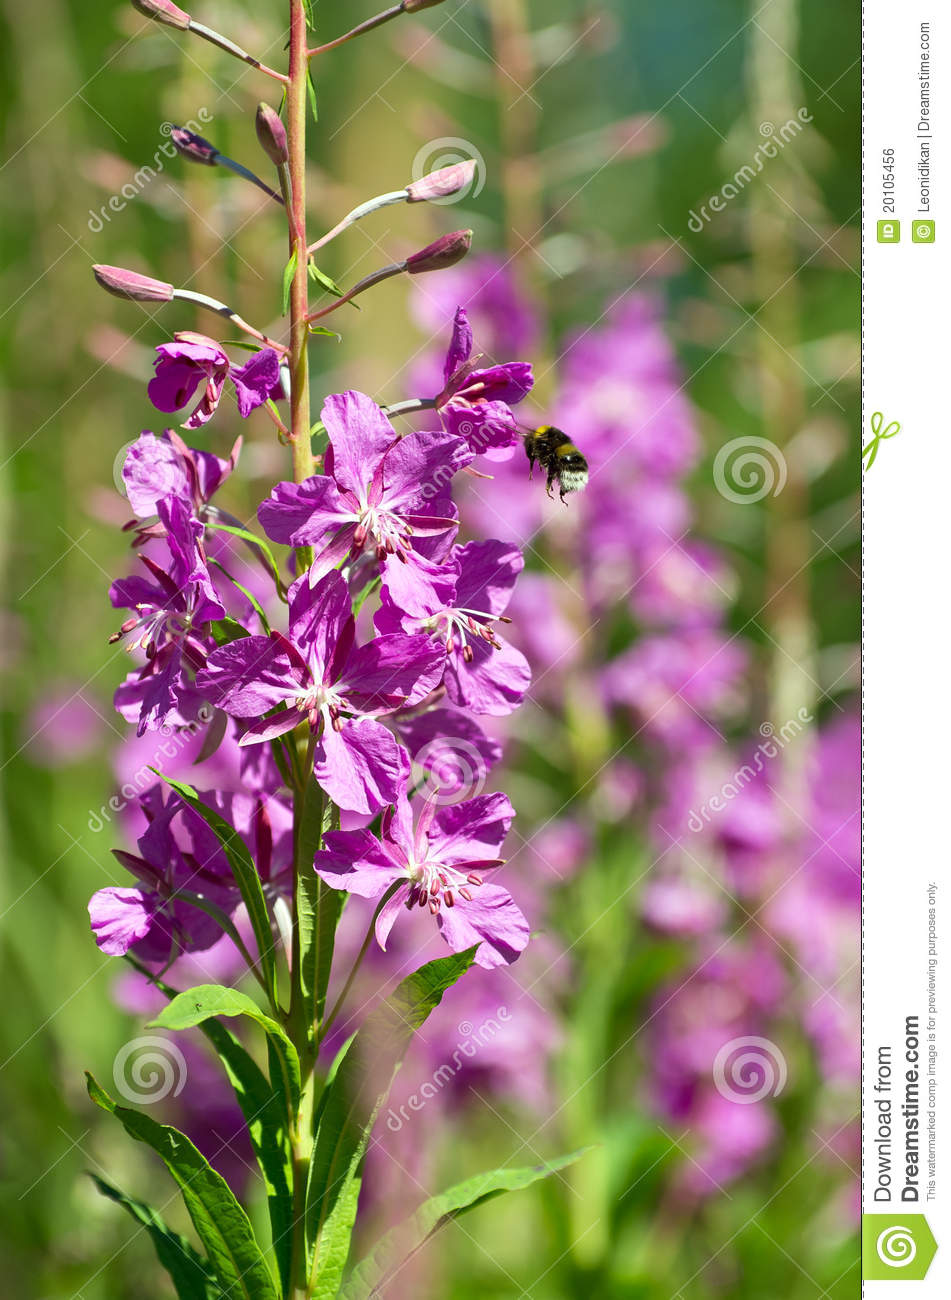 Bumblebee and willow-herb